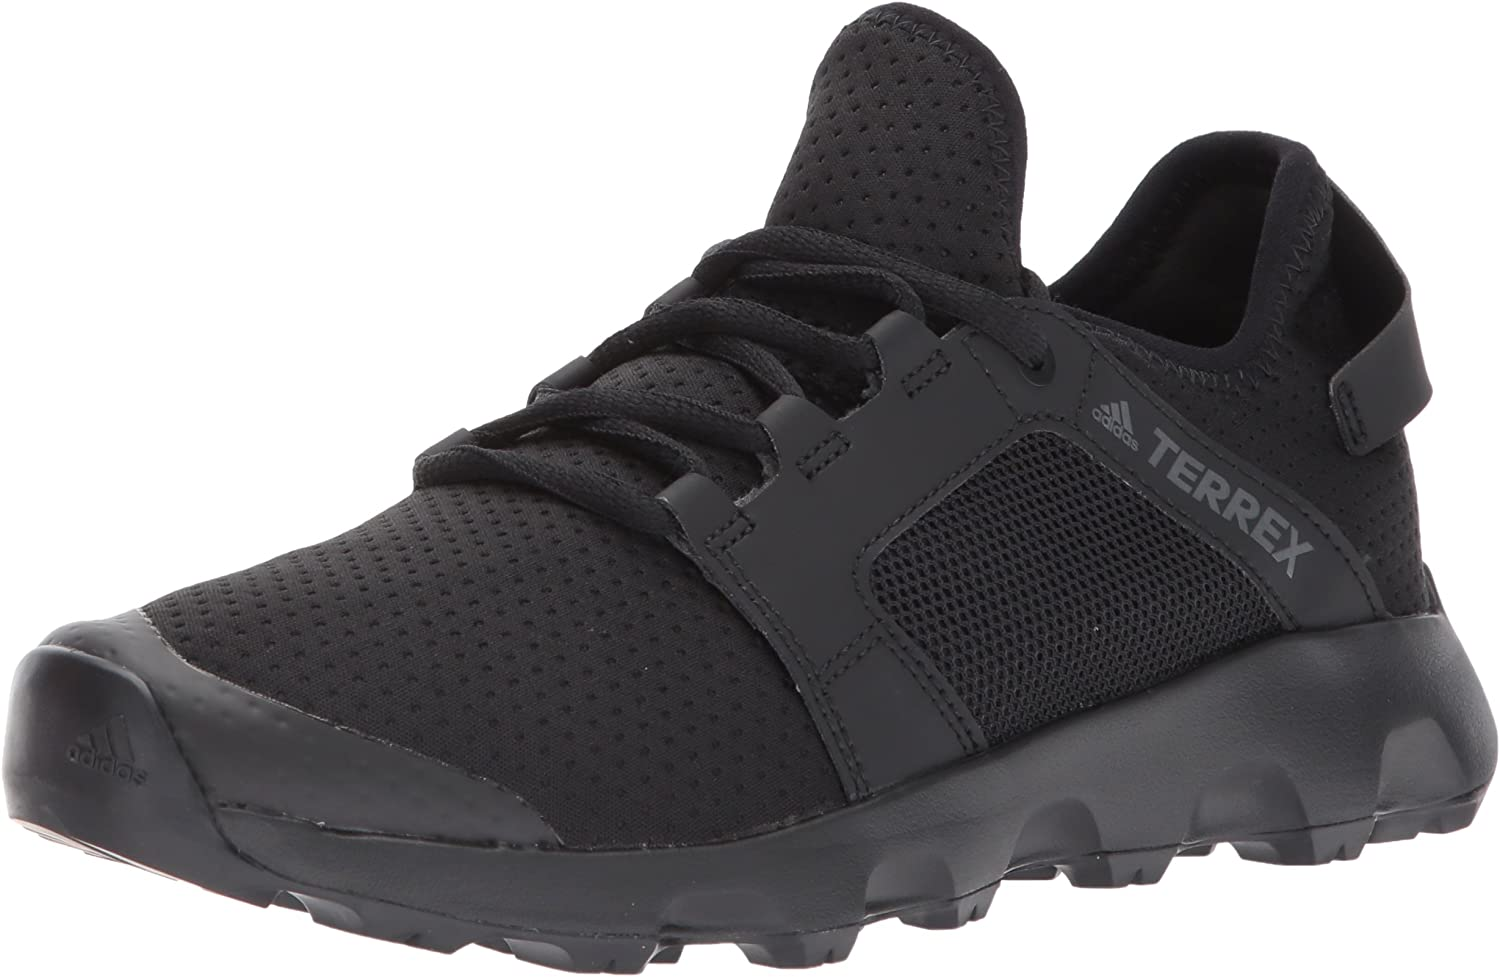 Adidas Outdoor Womens Terrex Voyager DLX W Walking shoes